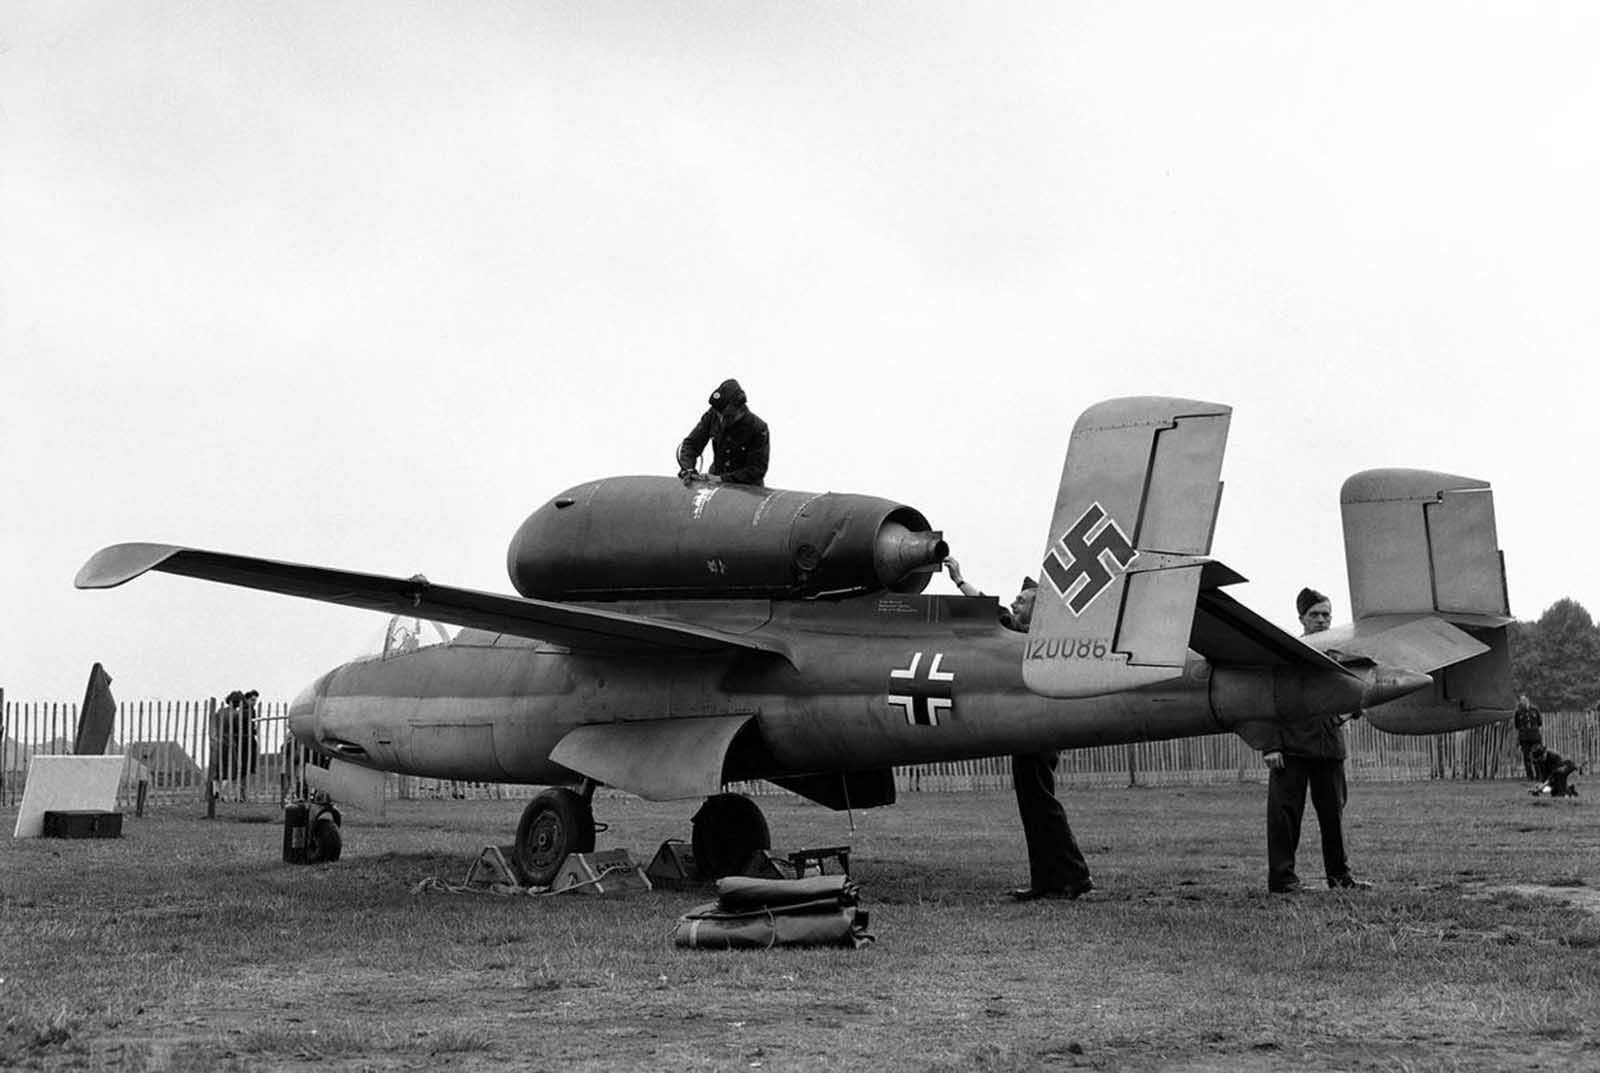 Many of Germany's captured new and experimental aircraft were displayed in an exhibition as part of London's Thanksgiving week on September 14, 1945. Among the aircraft are a number of jet and rocket propelled planes. Here, a side view of the Heinkel He-162